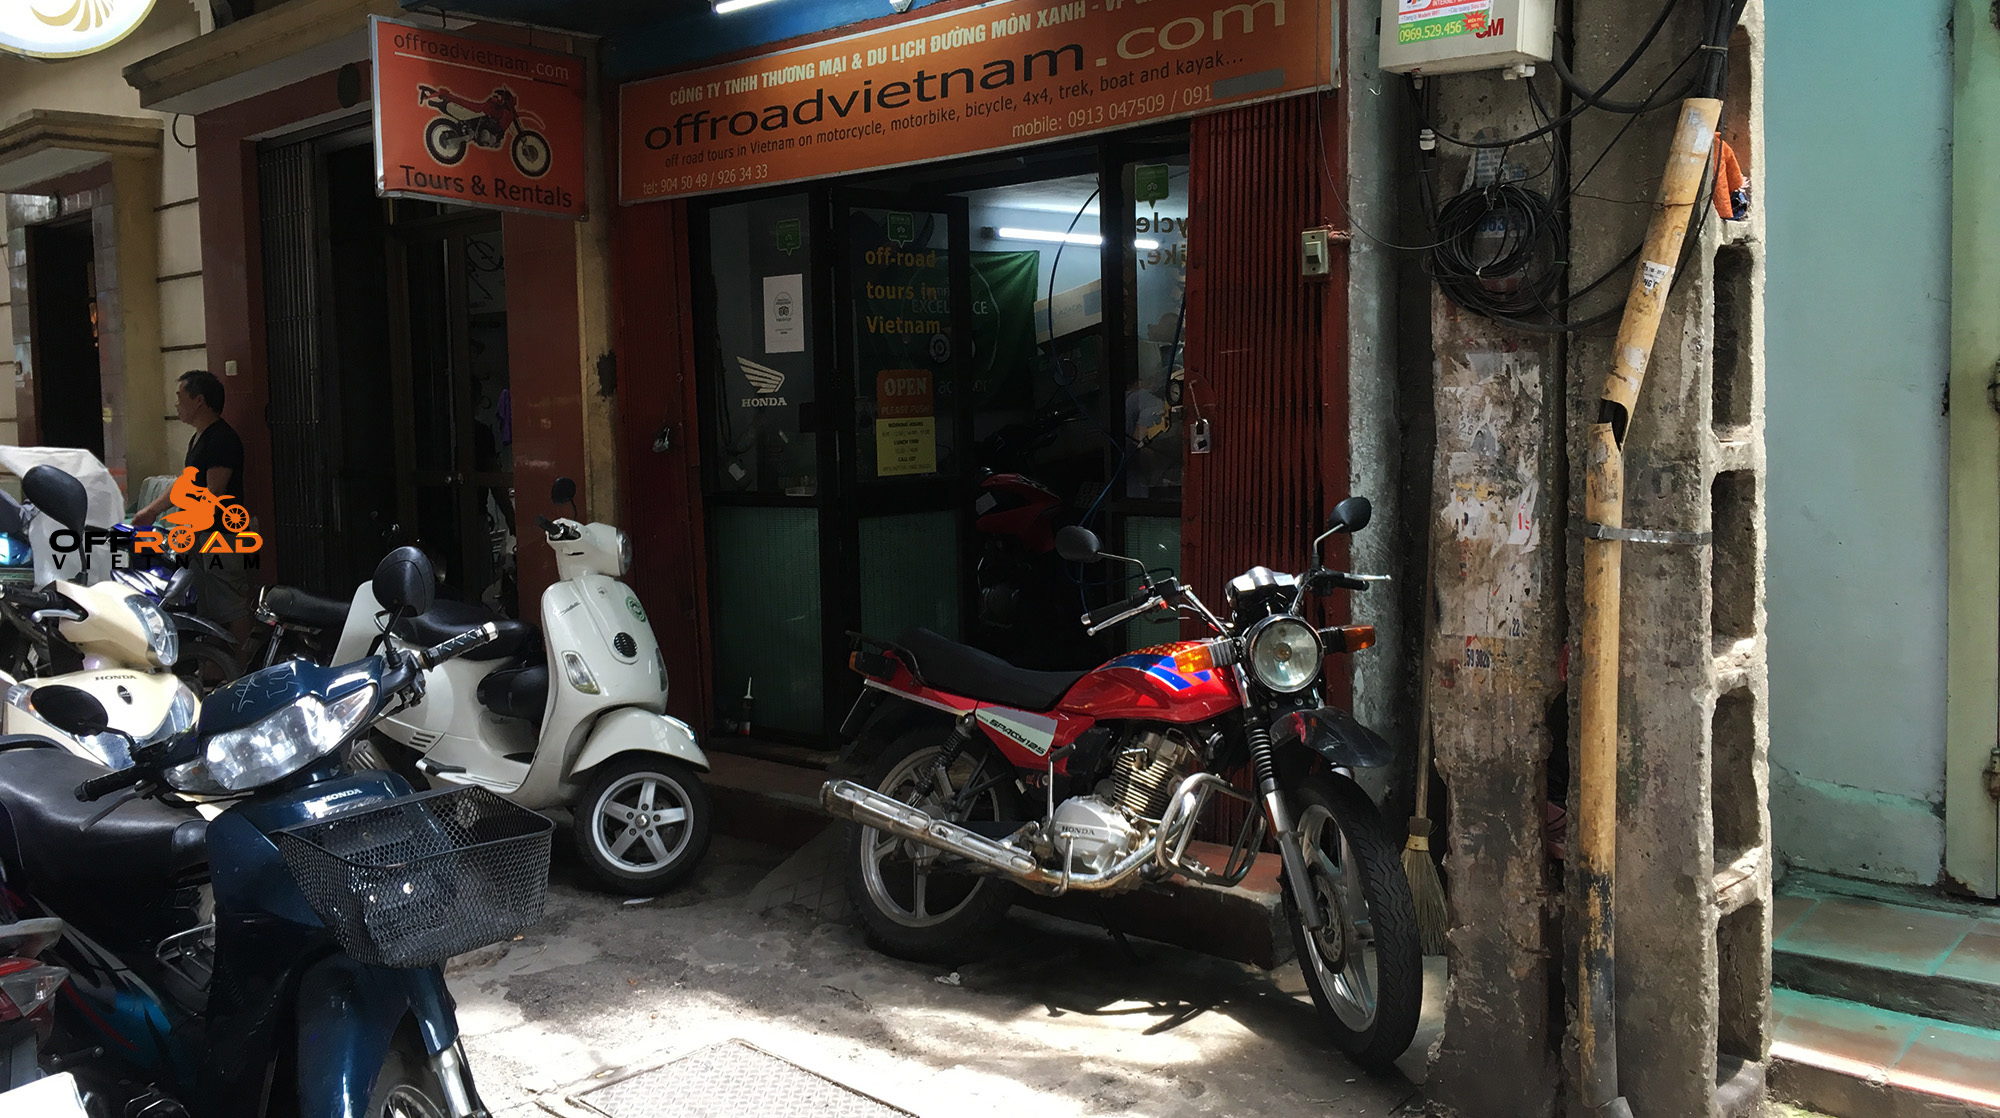 Offroad Vietnam office in Hanoi, this littel alleyway is small, typical and quite busy